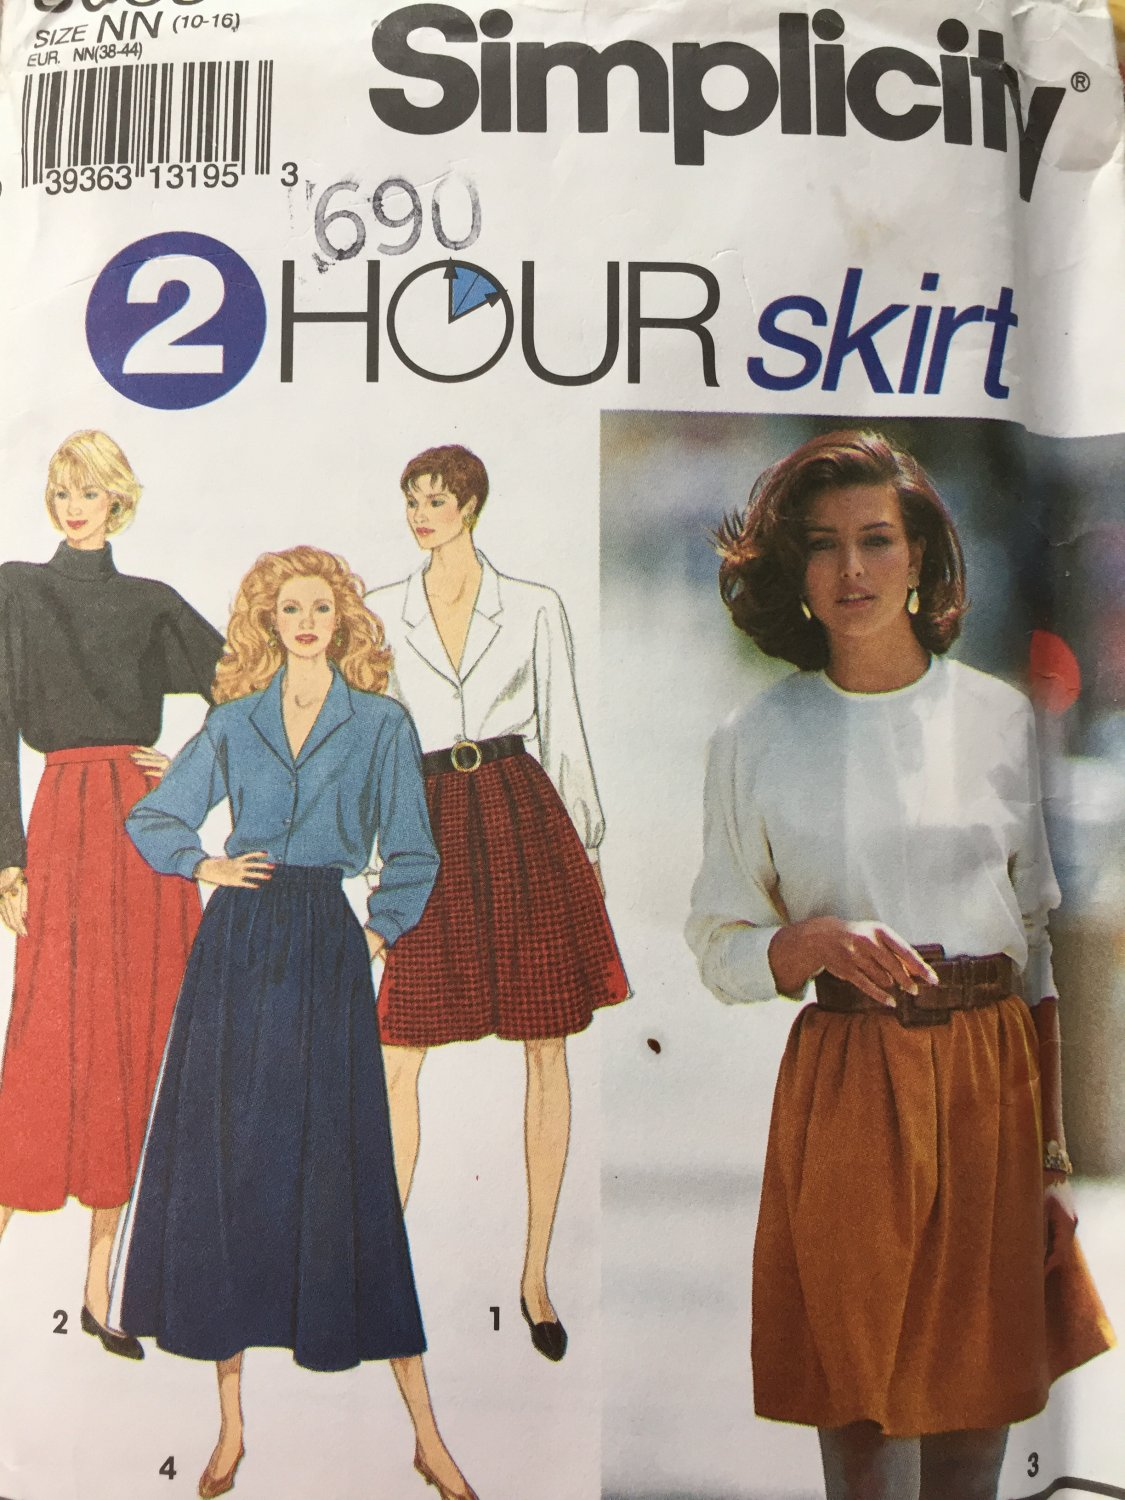 Simplicity Sewing Pattern 8069 Misses Womens Skirt Size 10-16